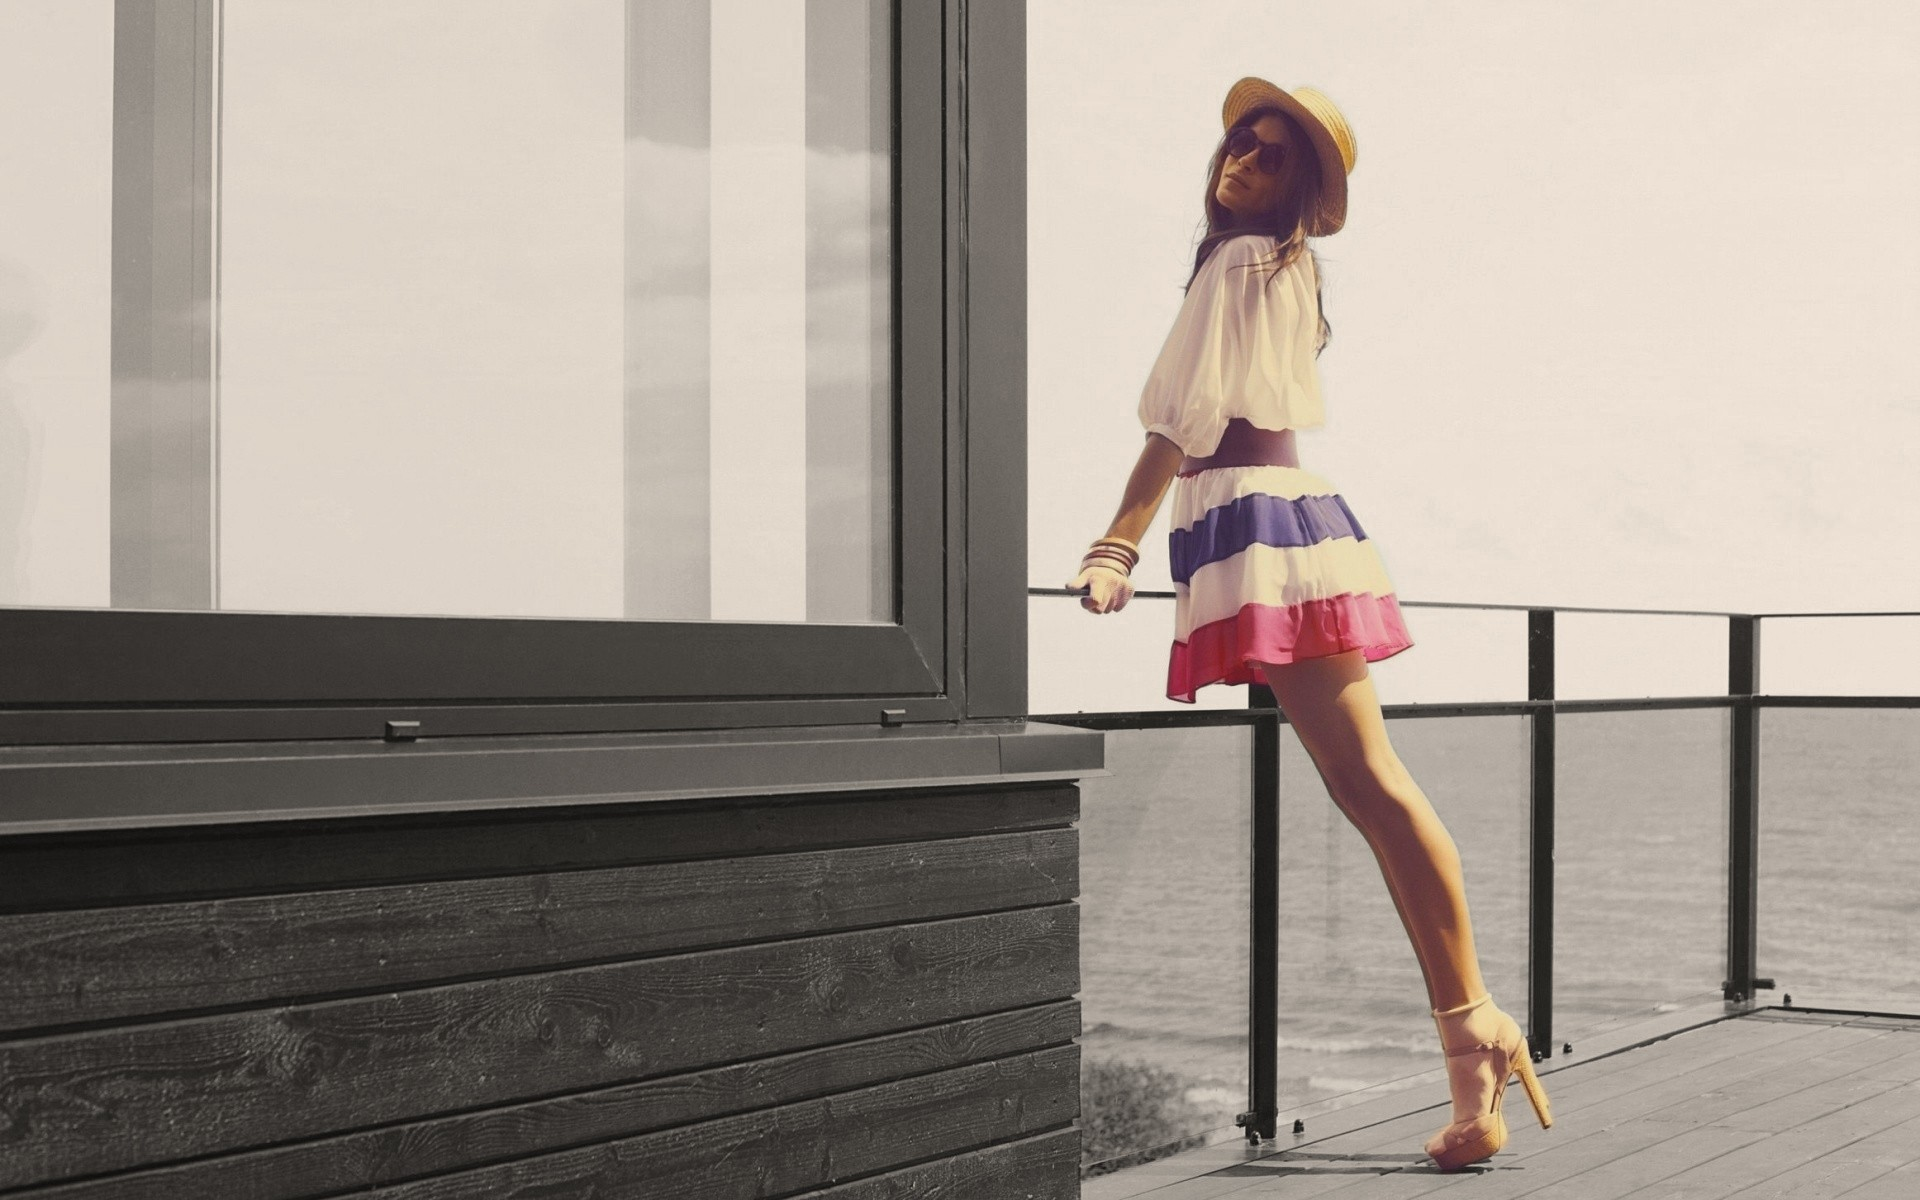 Long legs images for desktop and wallpaper   Picture for 1920x1200